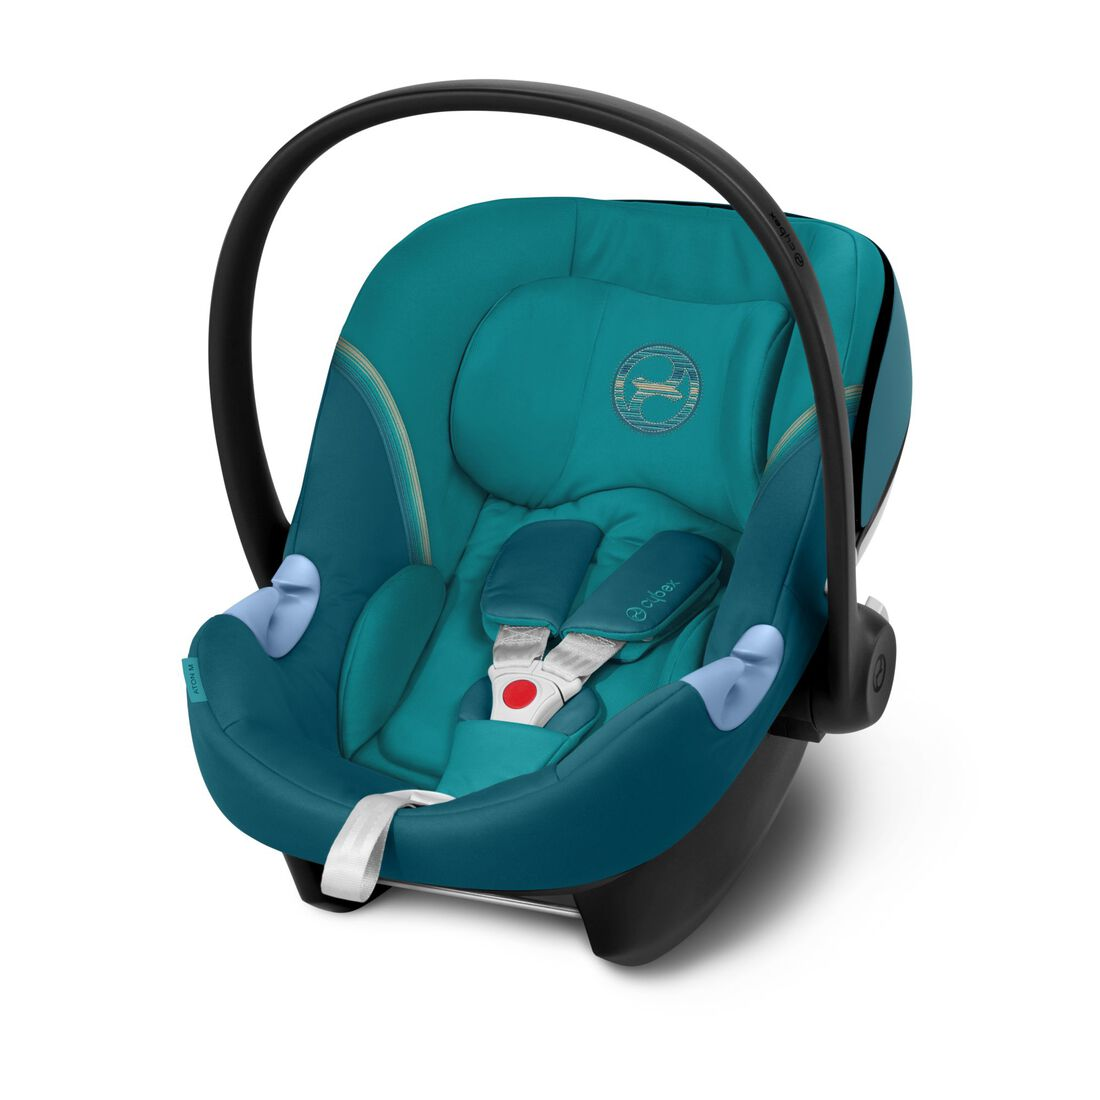 CYBEX Aton M - River Blue in River Blue large image number 1